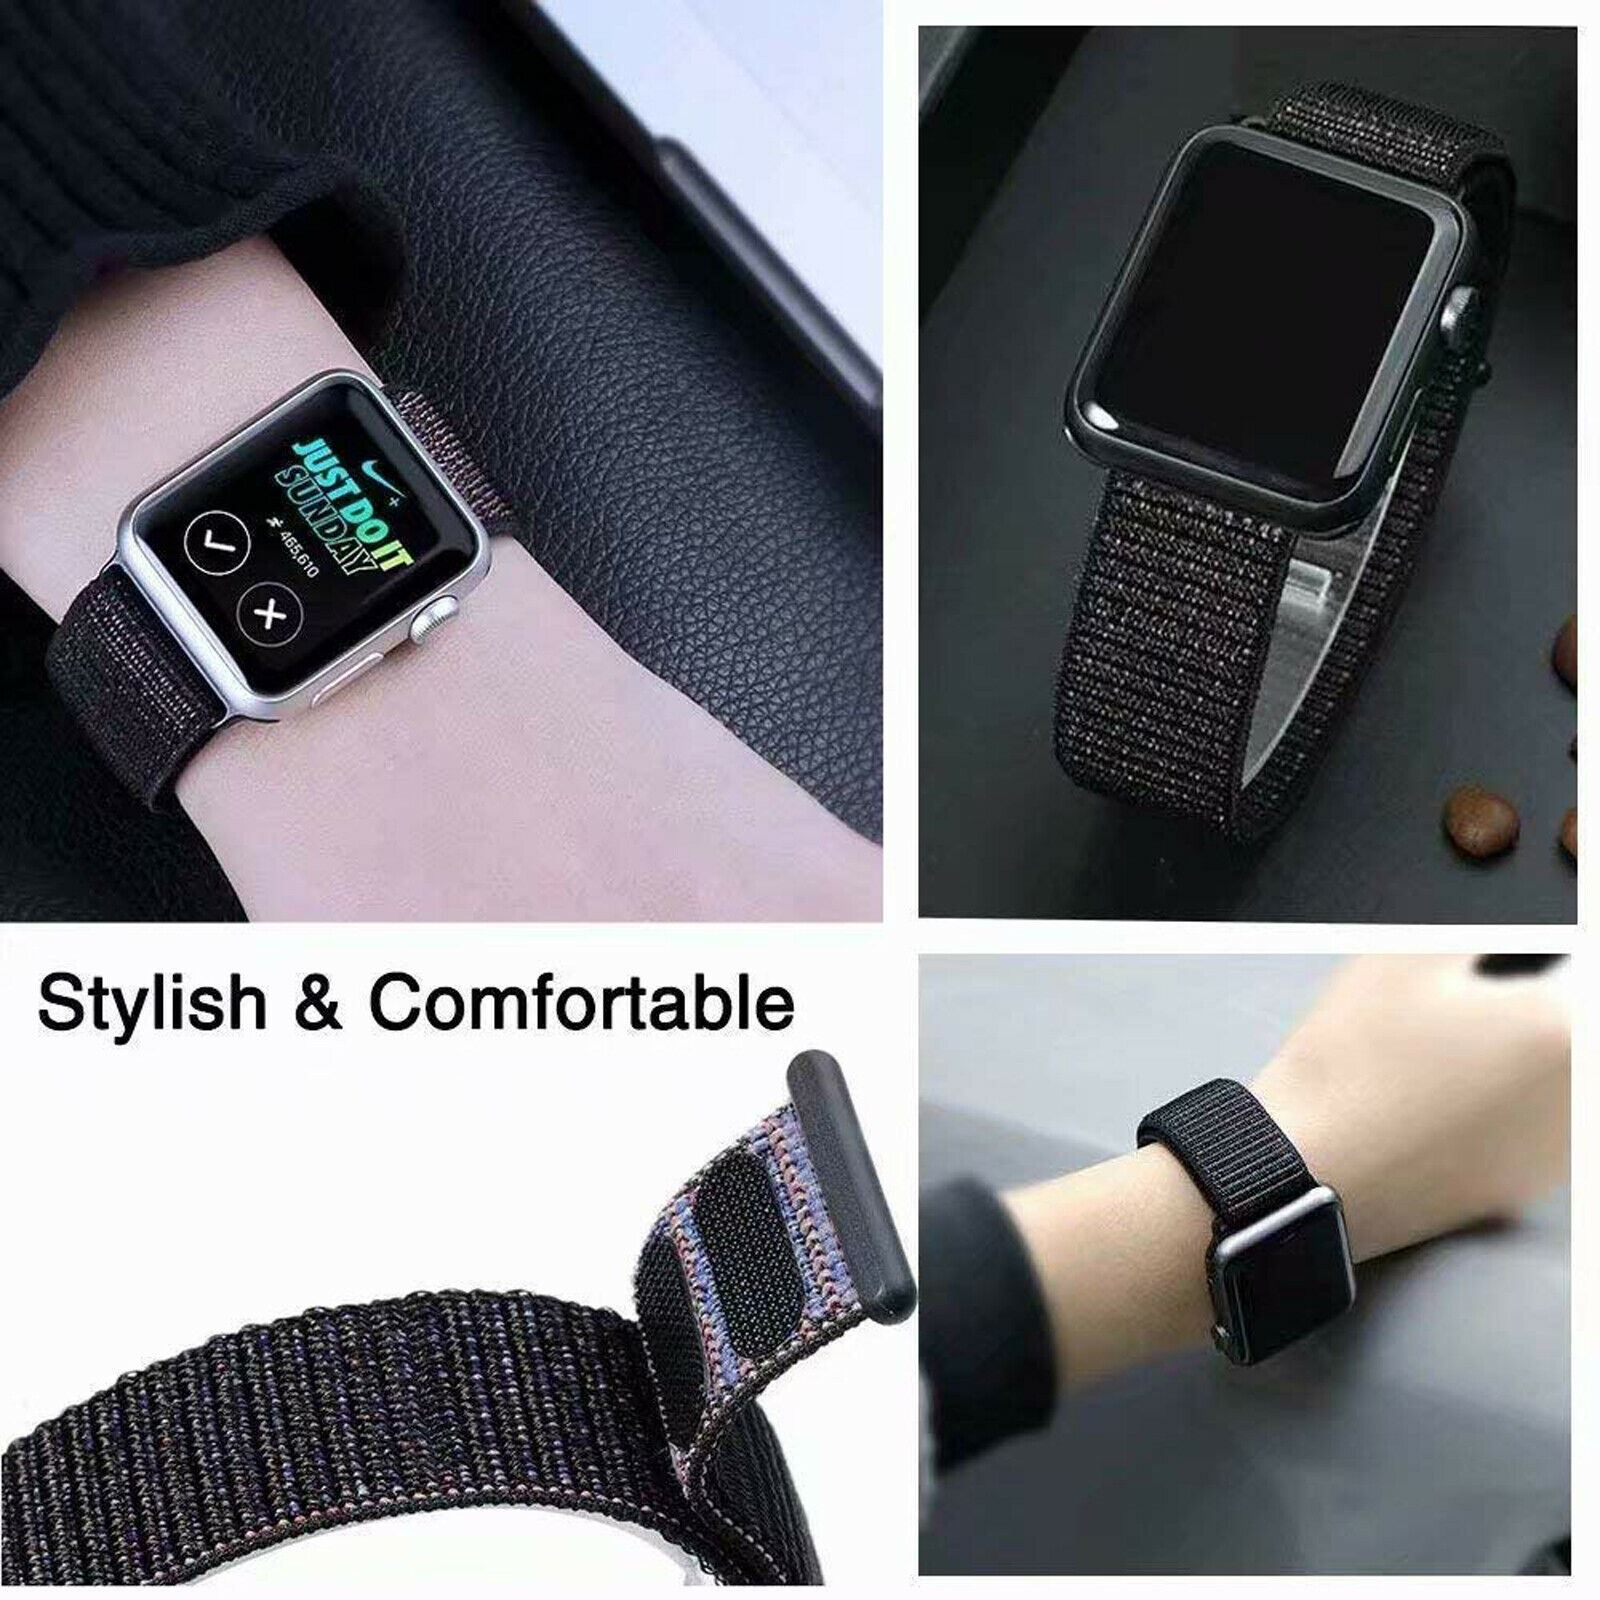 Band-Strap-For-Apple-Watch-Adjustable-Waterproof-Braided-Nylon-Material thumbnail 51